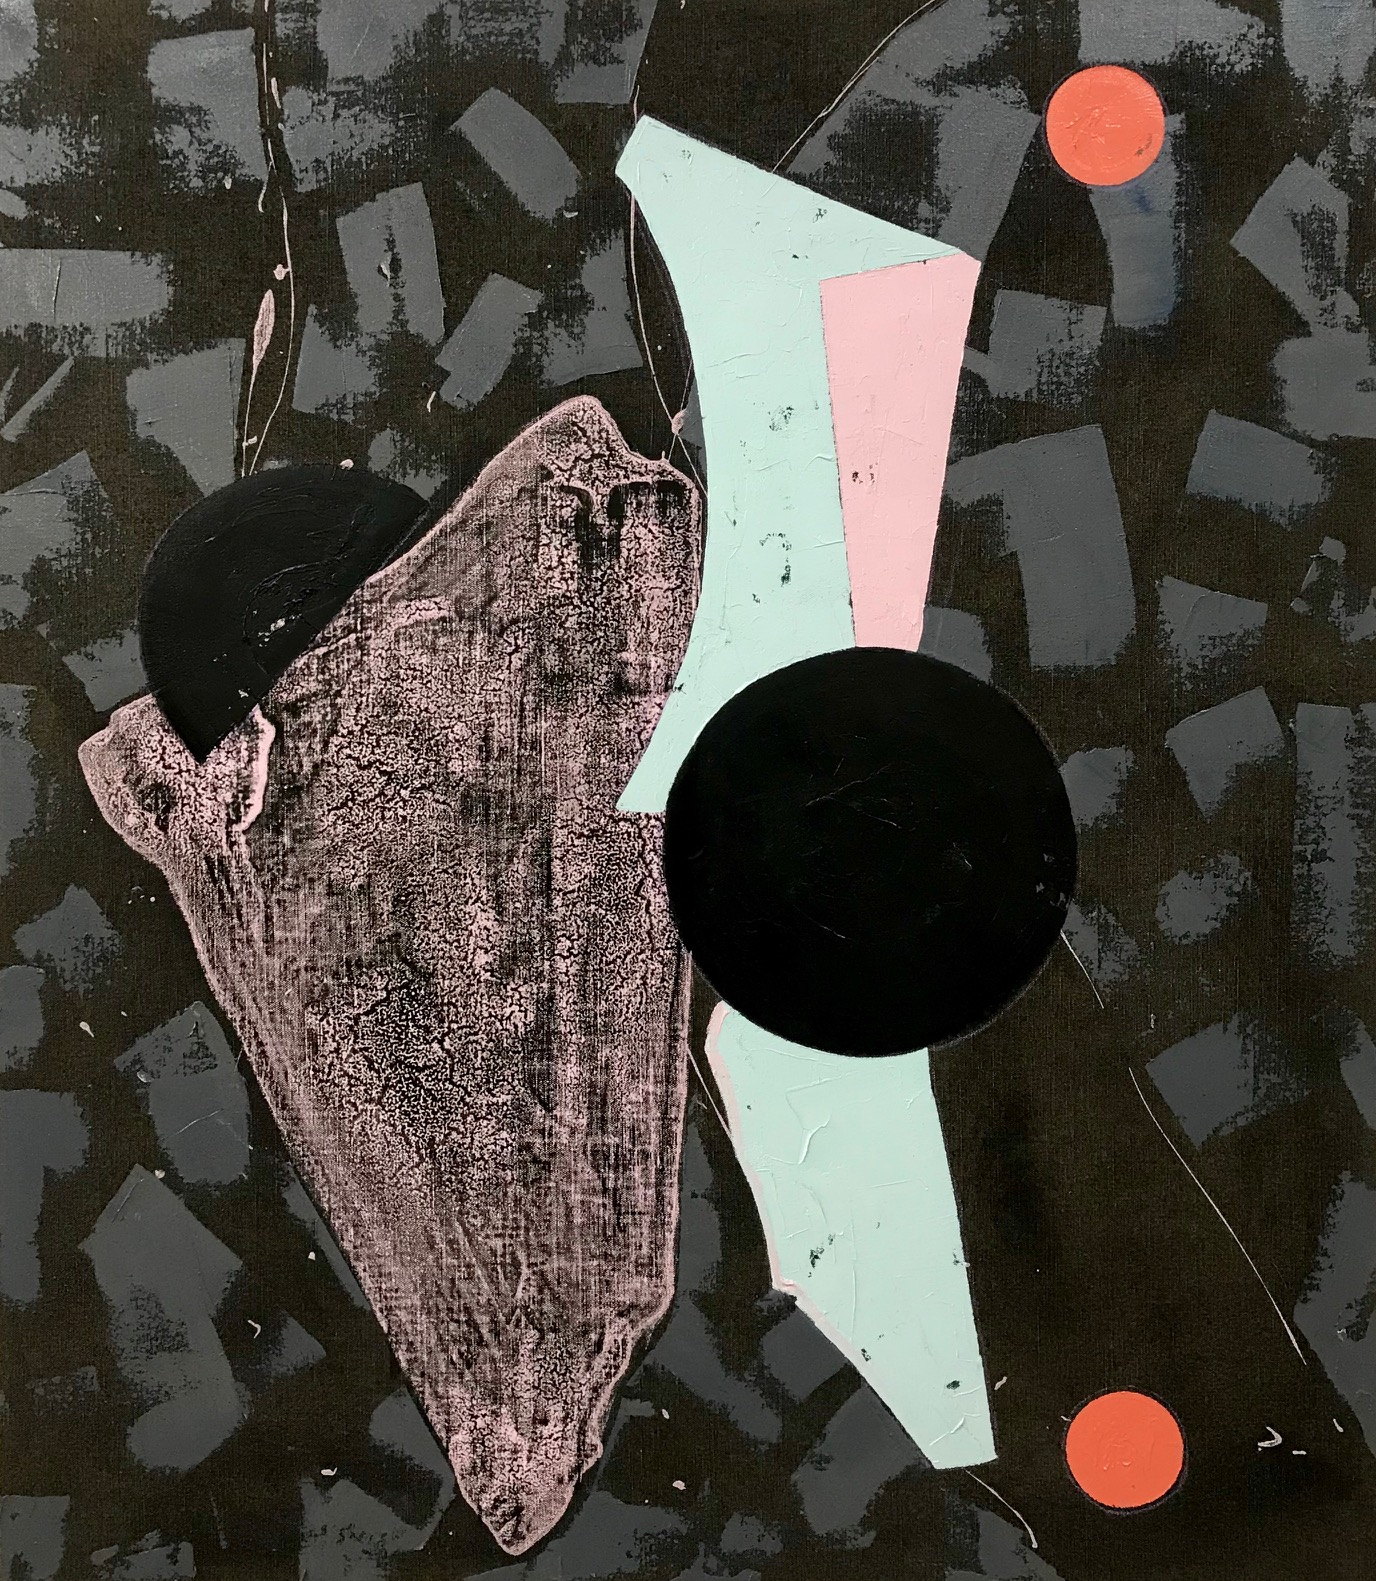 PETER SHARP  Two Fold , 2019 oil and acrylic on linen 152 x 130 cm